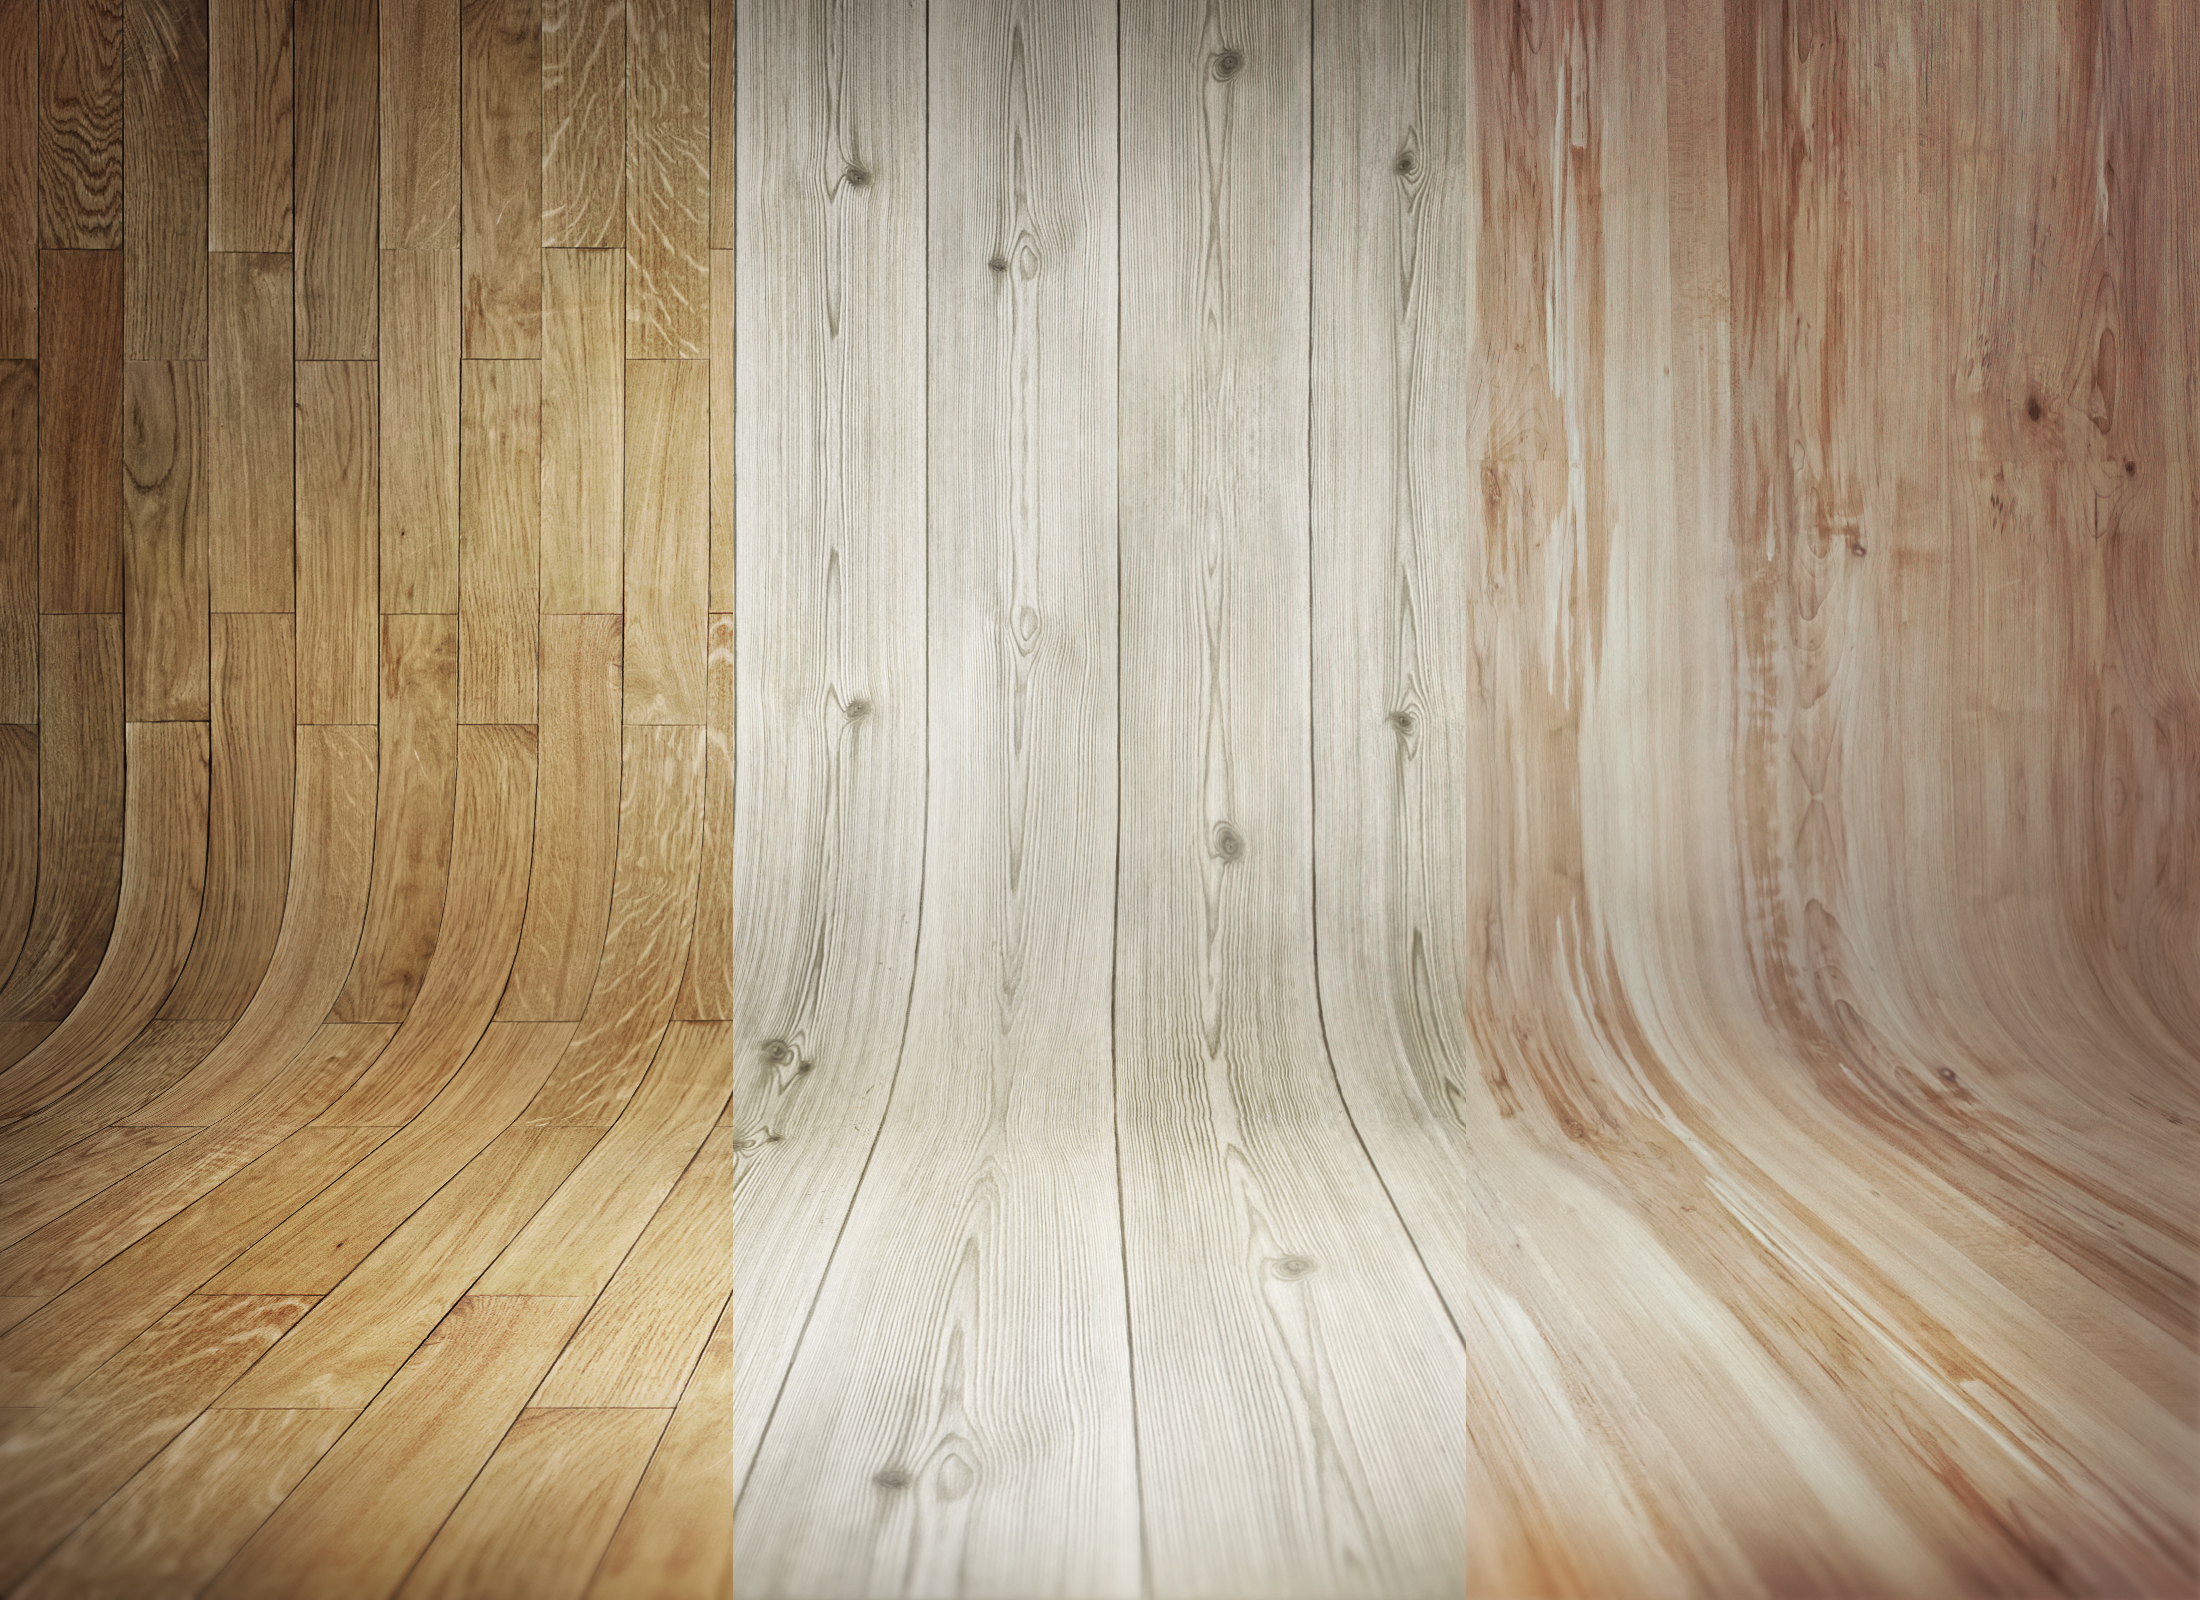 3 Curved Wooden Backdrops Vol1  GraphicBurger